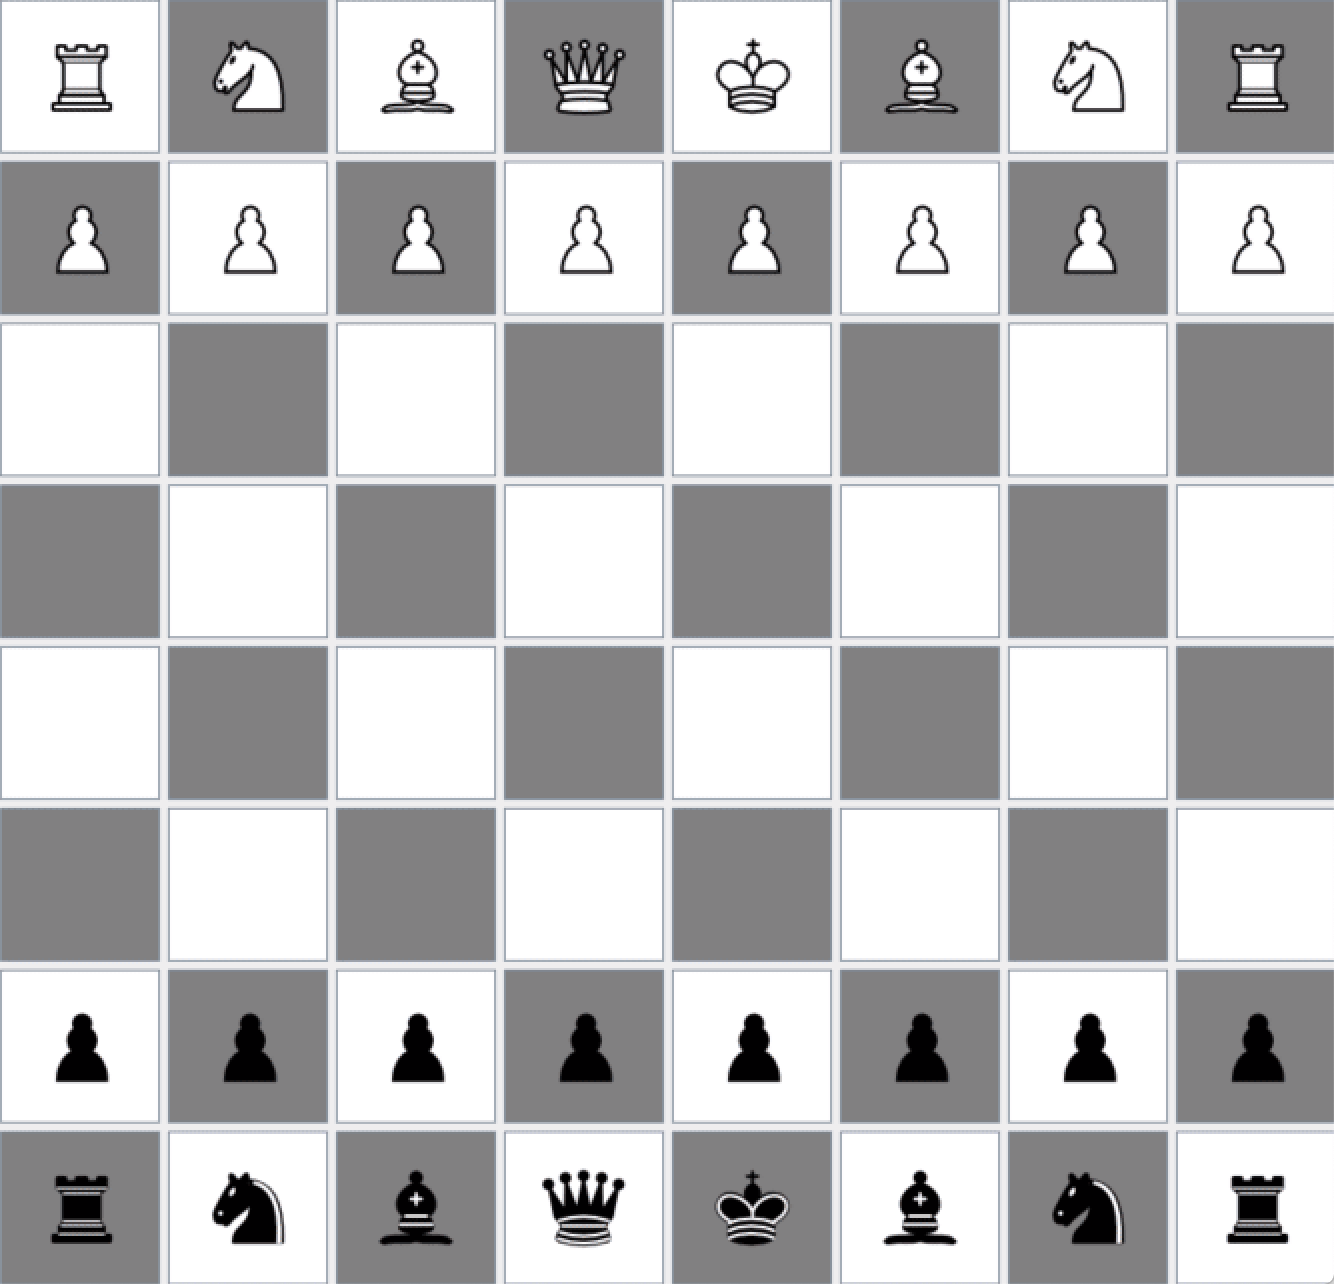 chess assigment